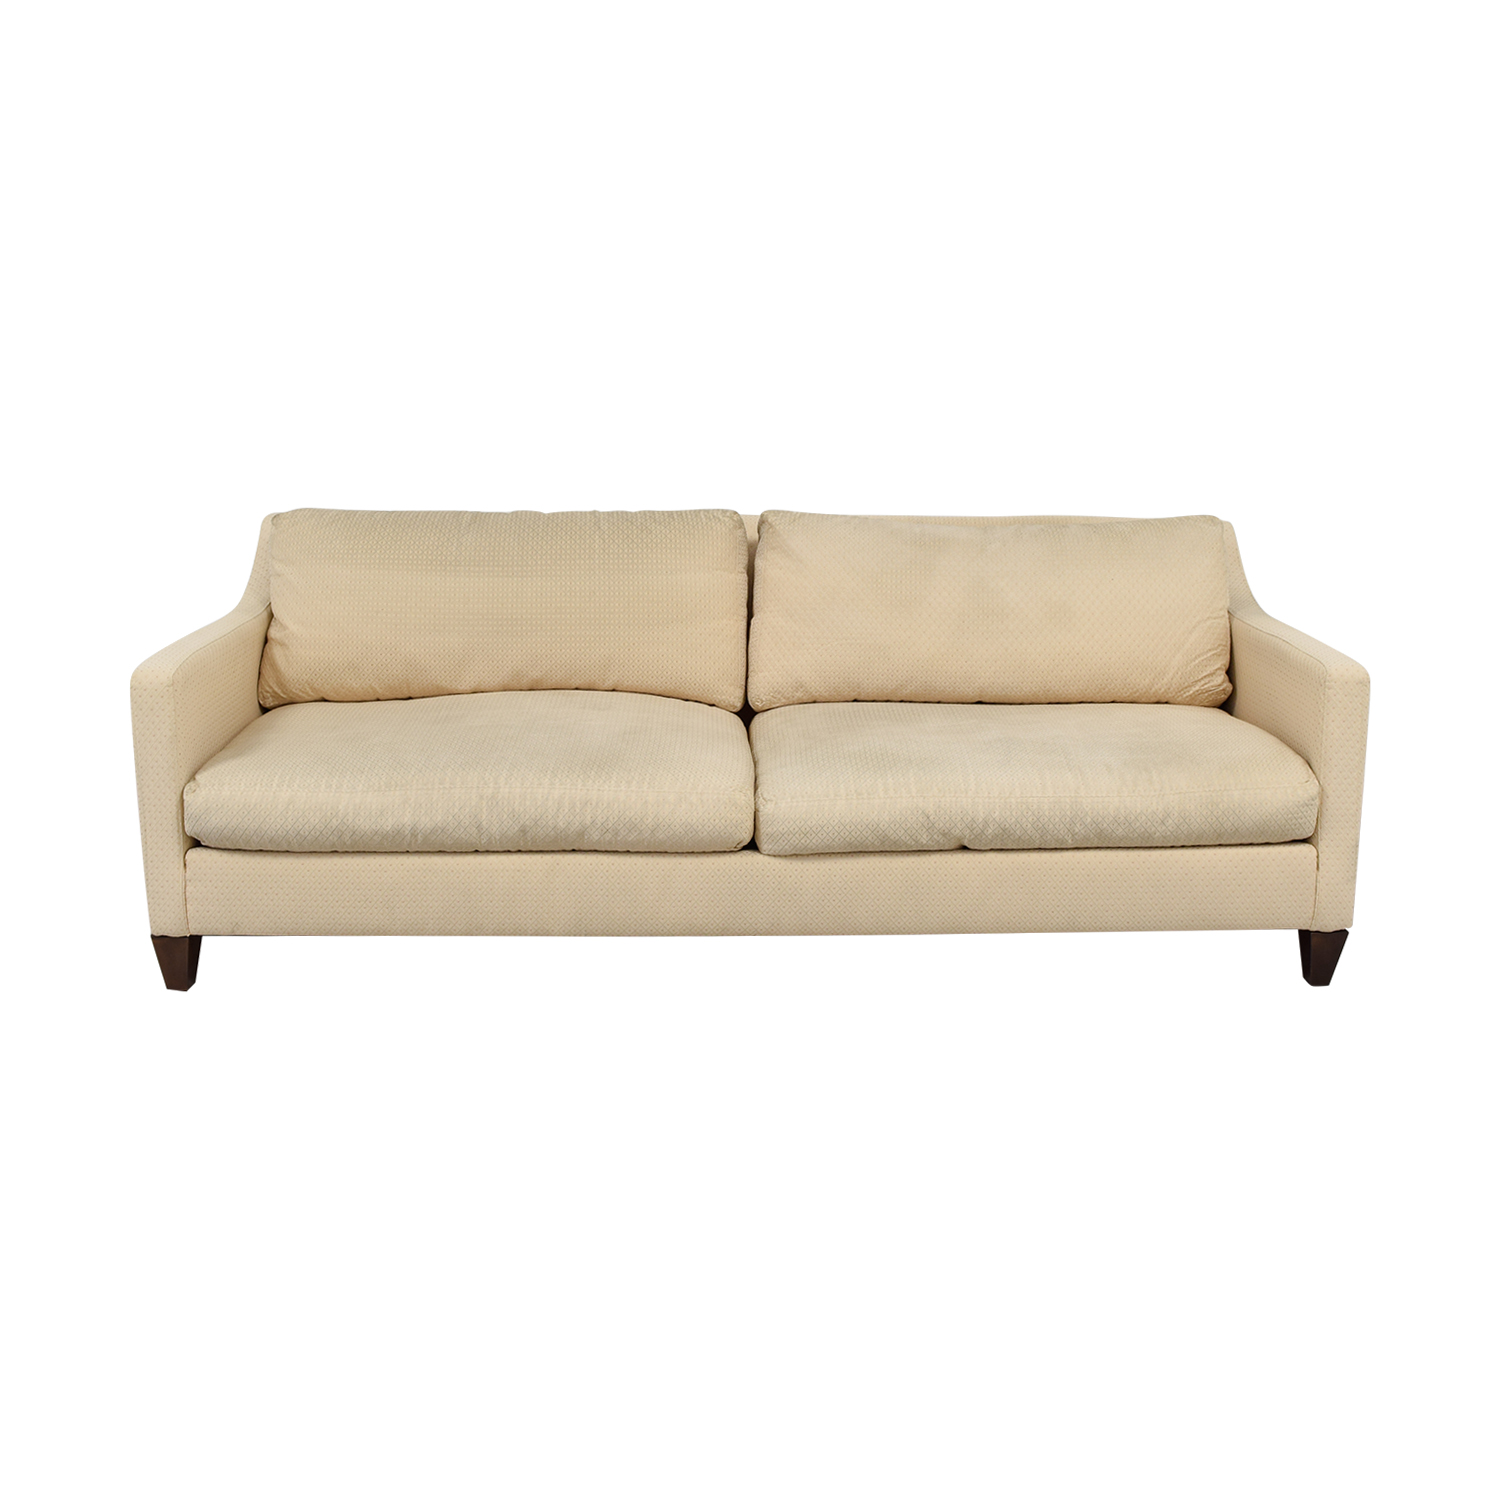 Ethan Allen Ethan Allen Beige Two-Cushion Couch second hand